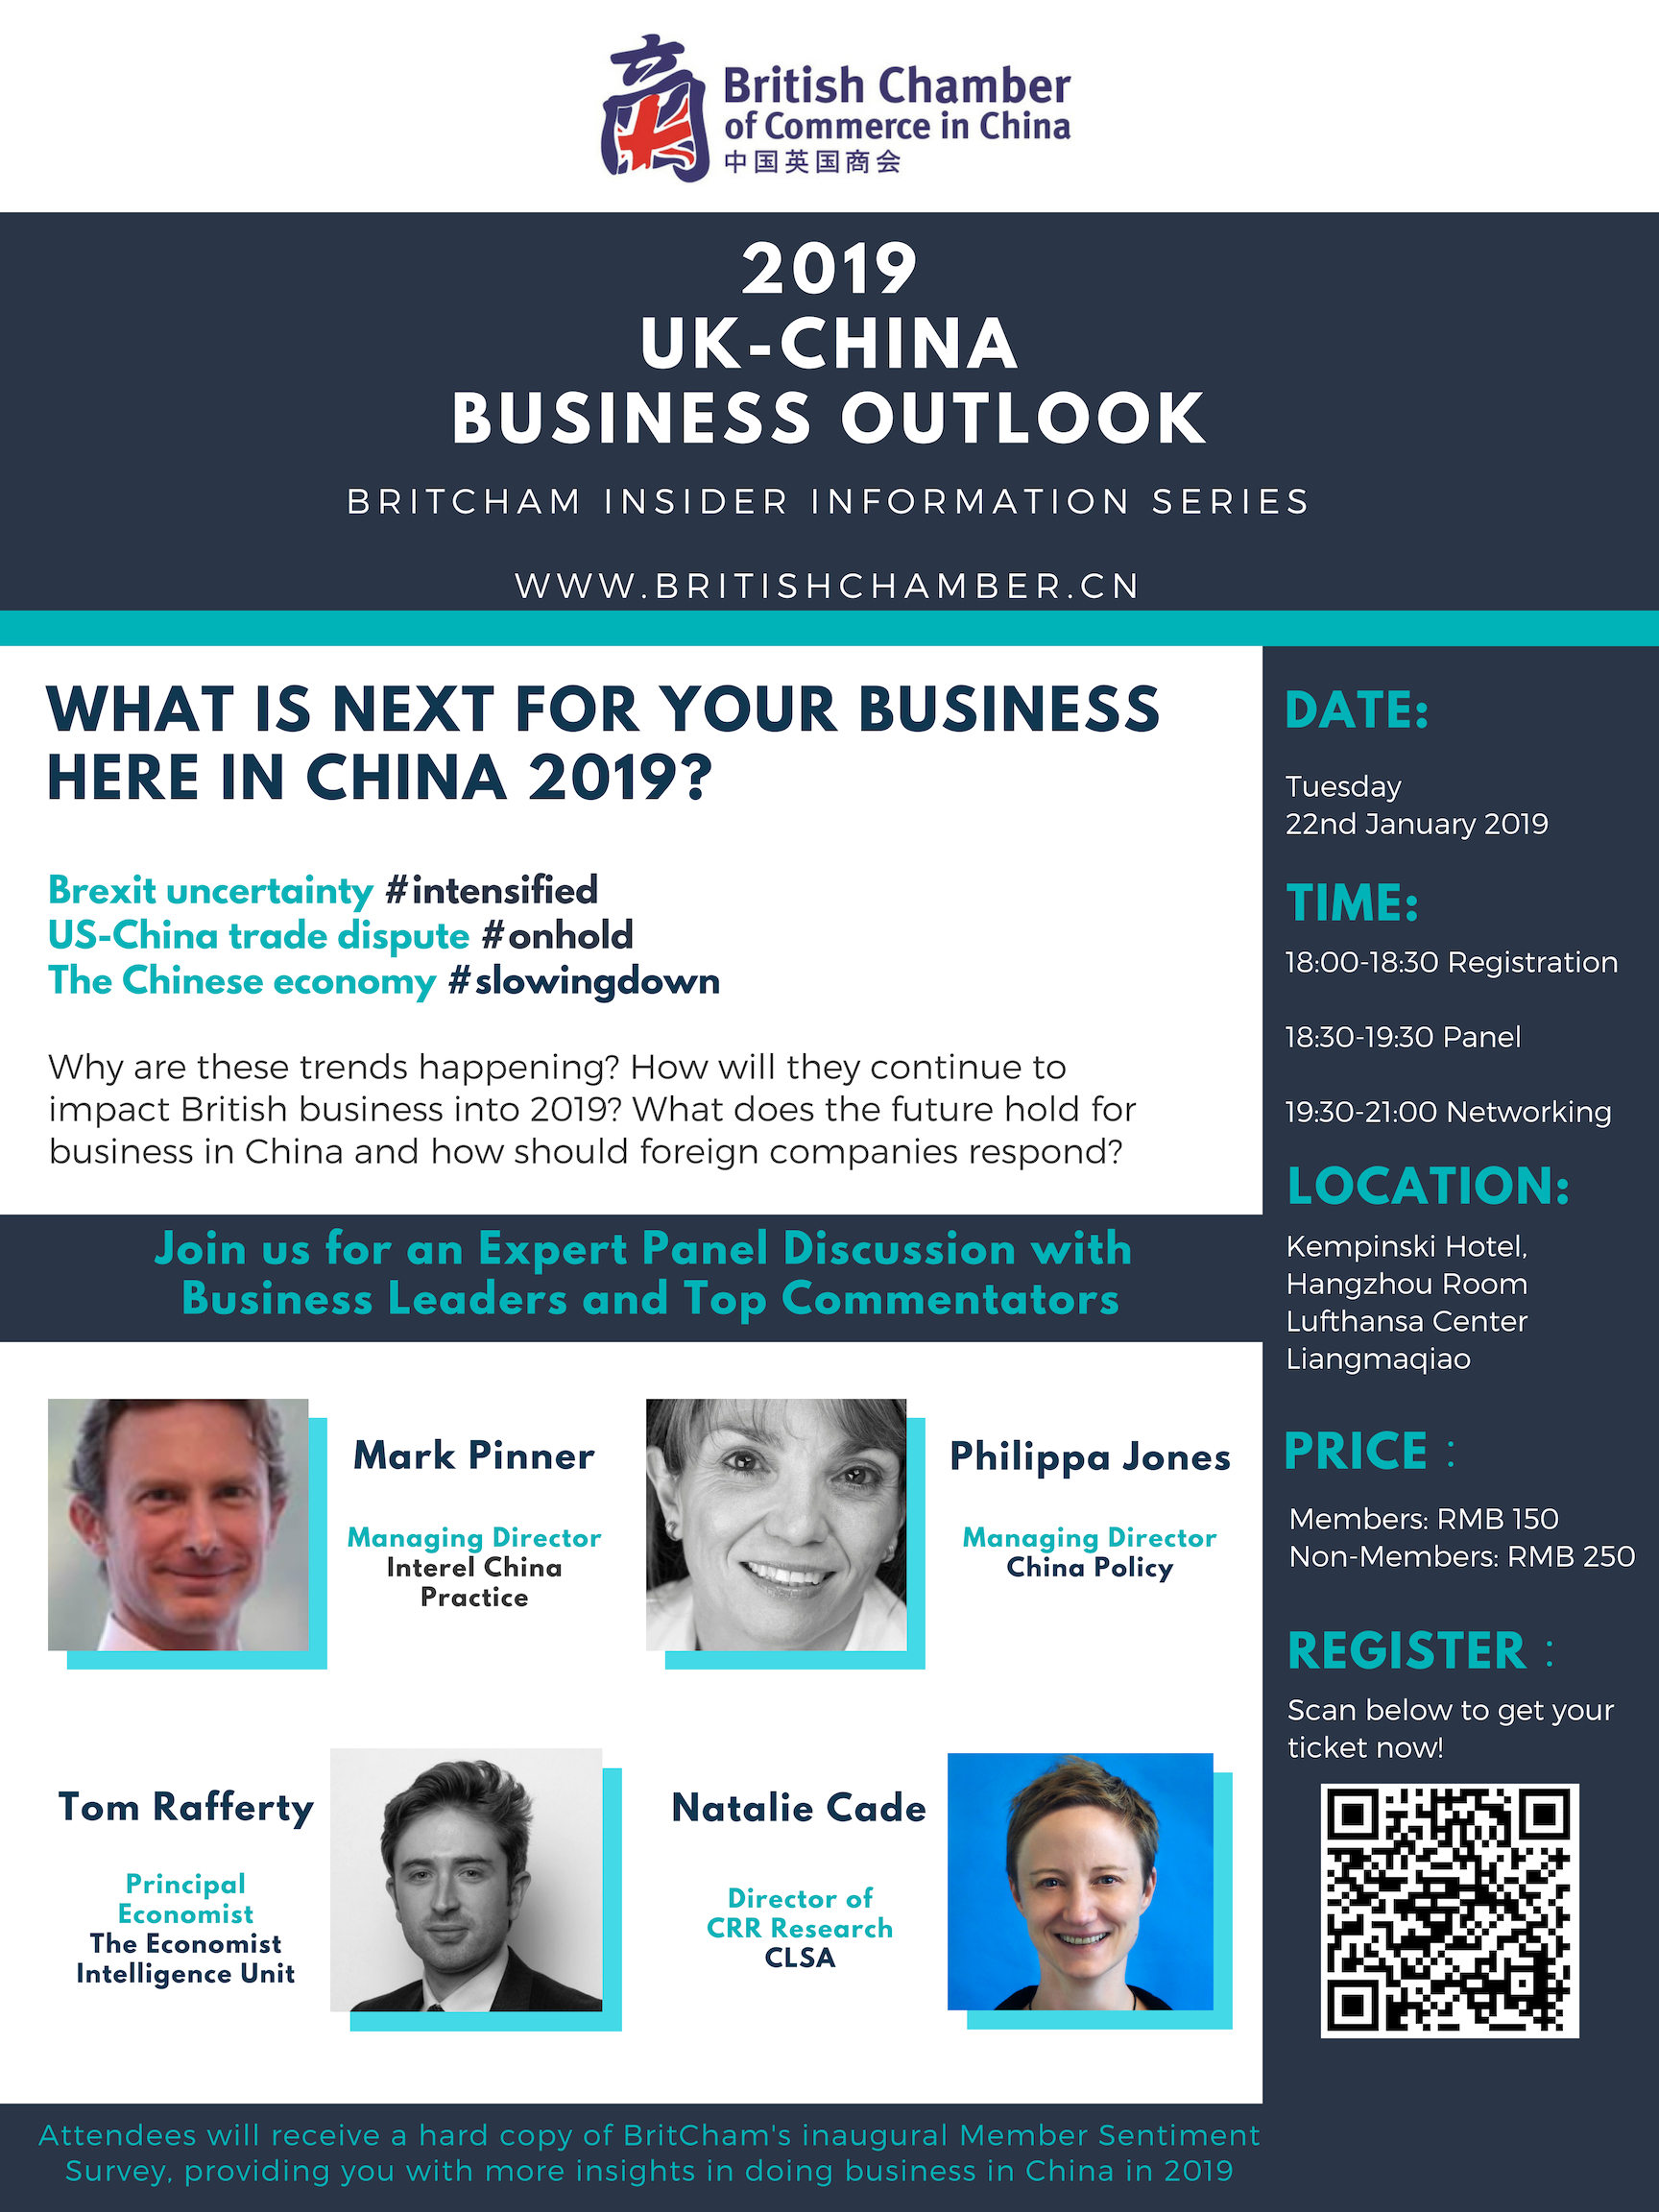 UK-China Business Outlook 2019